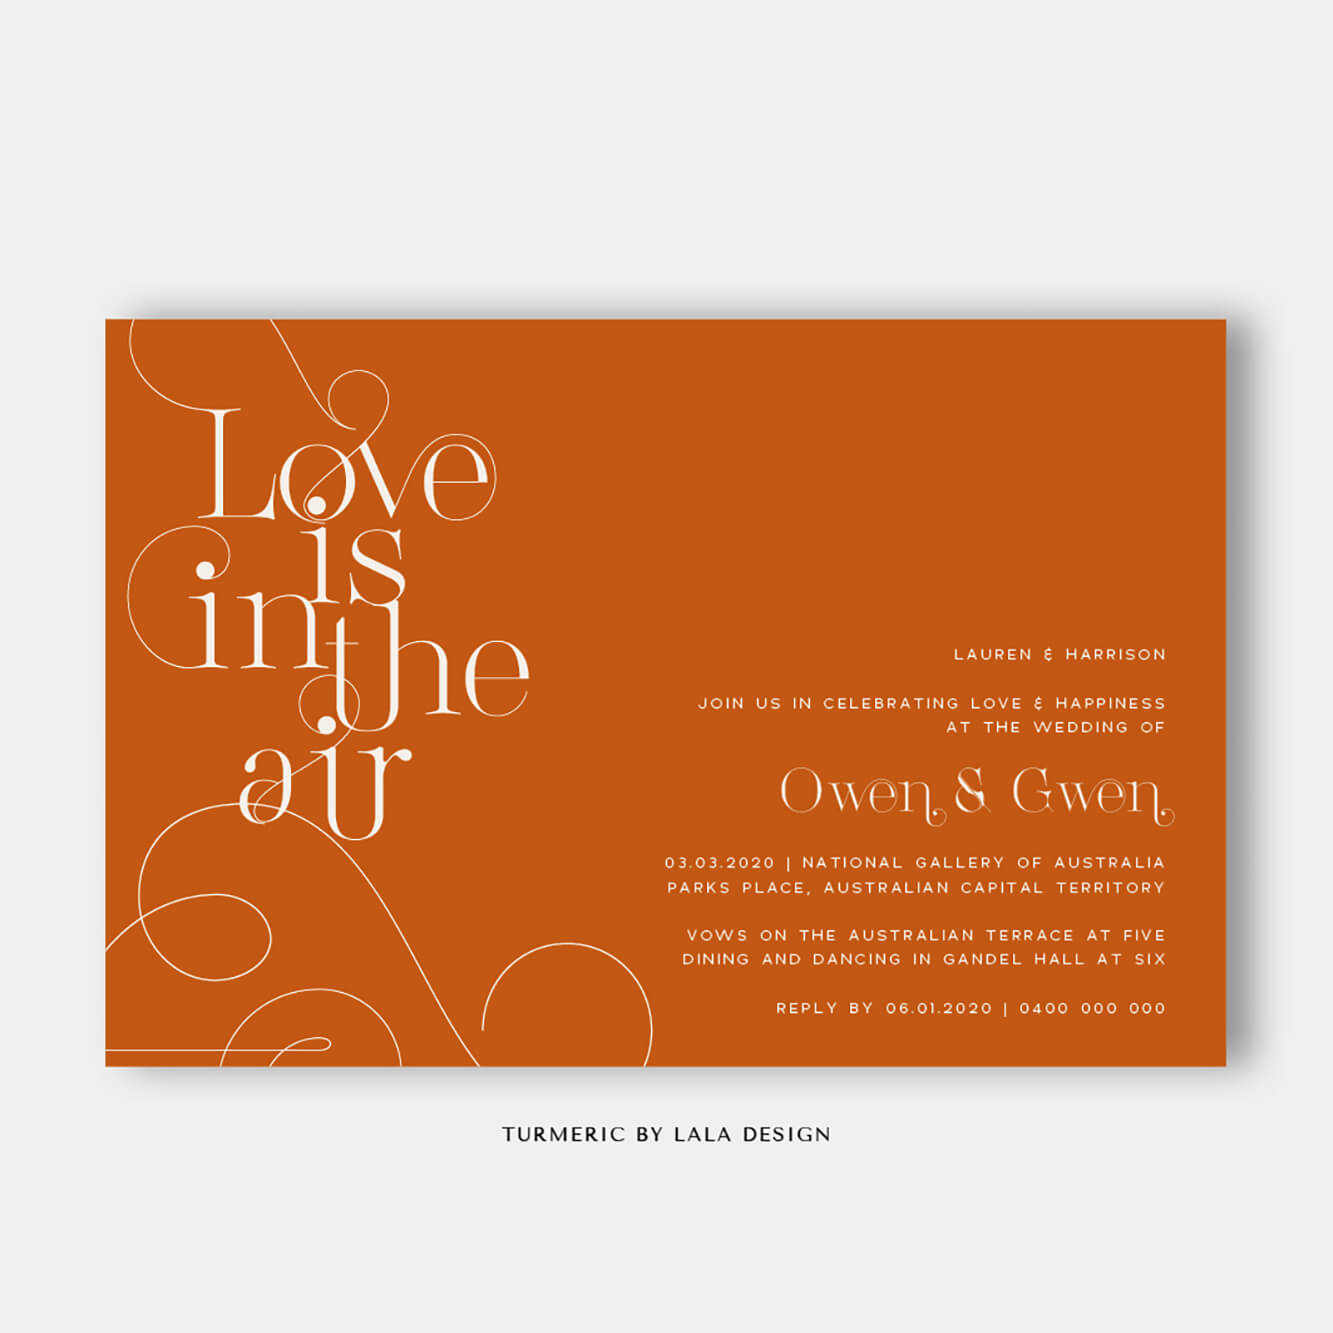 Wedding stationery full set | Turmeric - Perth WA